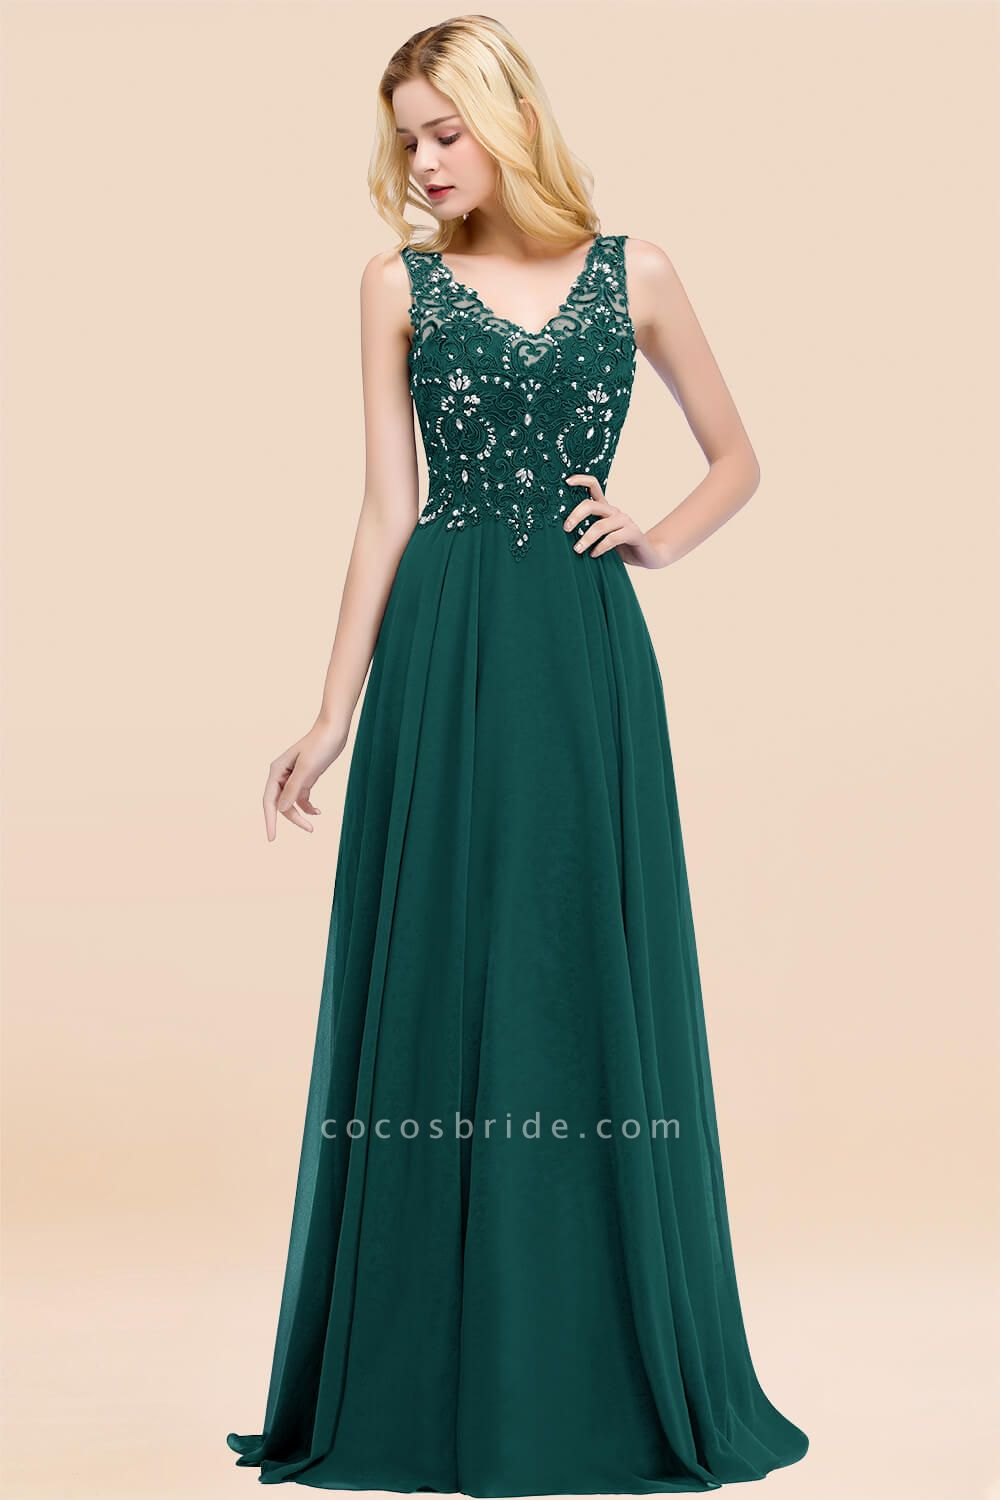 A-line Chiffon Appliques V-neck Sleeveless Floor-Length Bridesmaid Dresses with Crystals